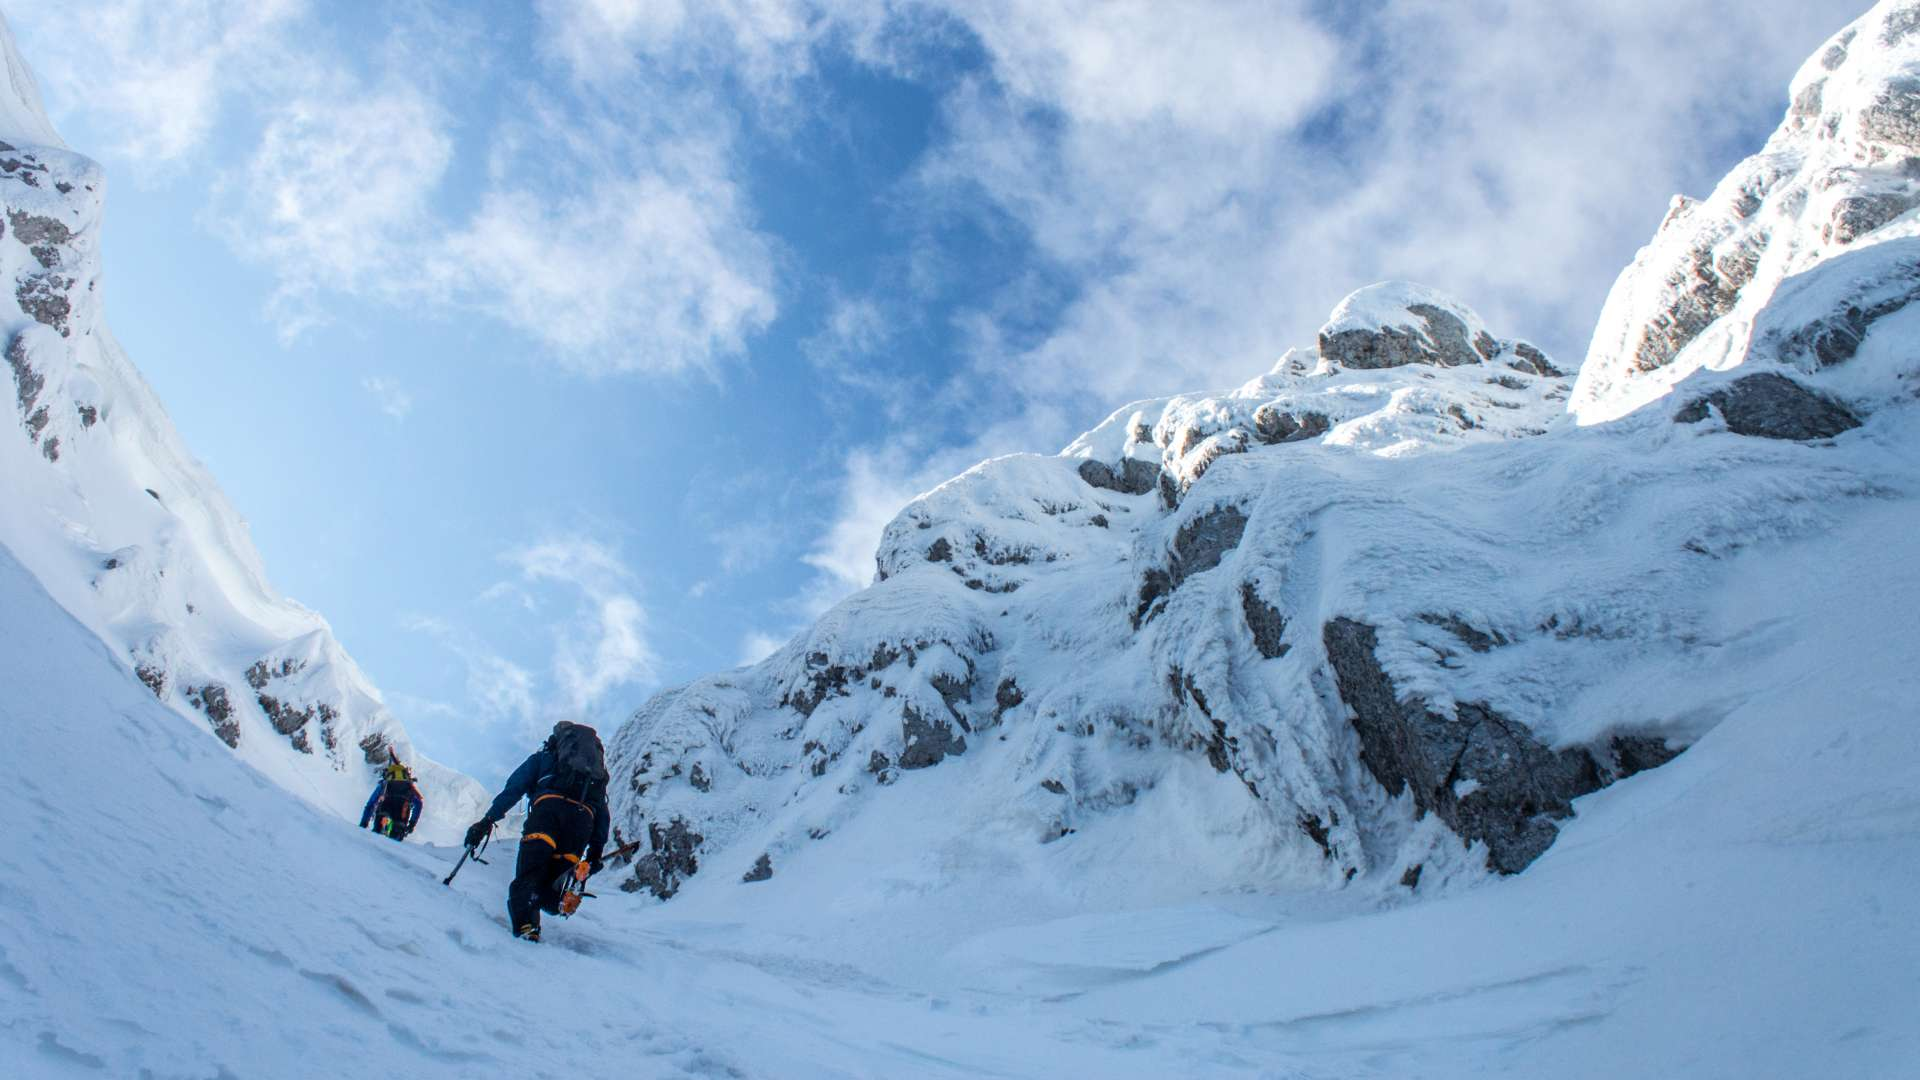 Climbing up the snow gully2